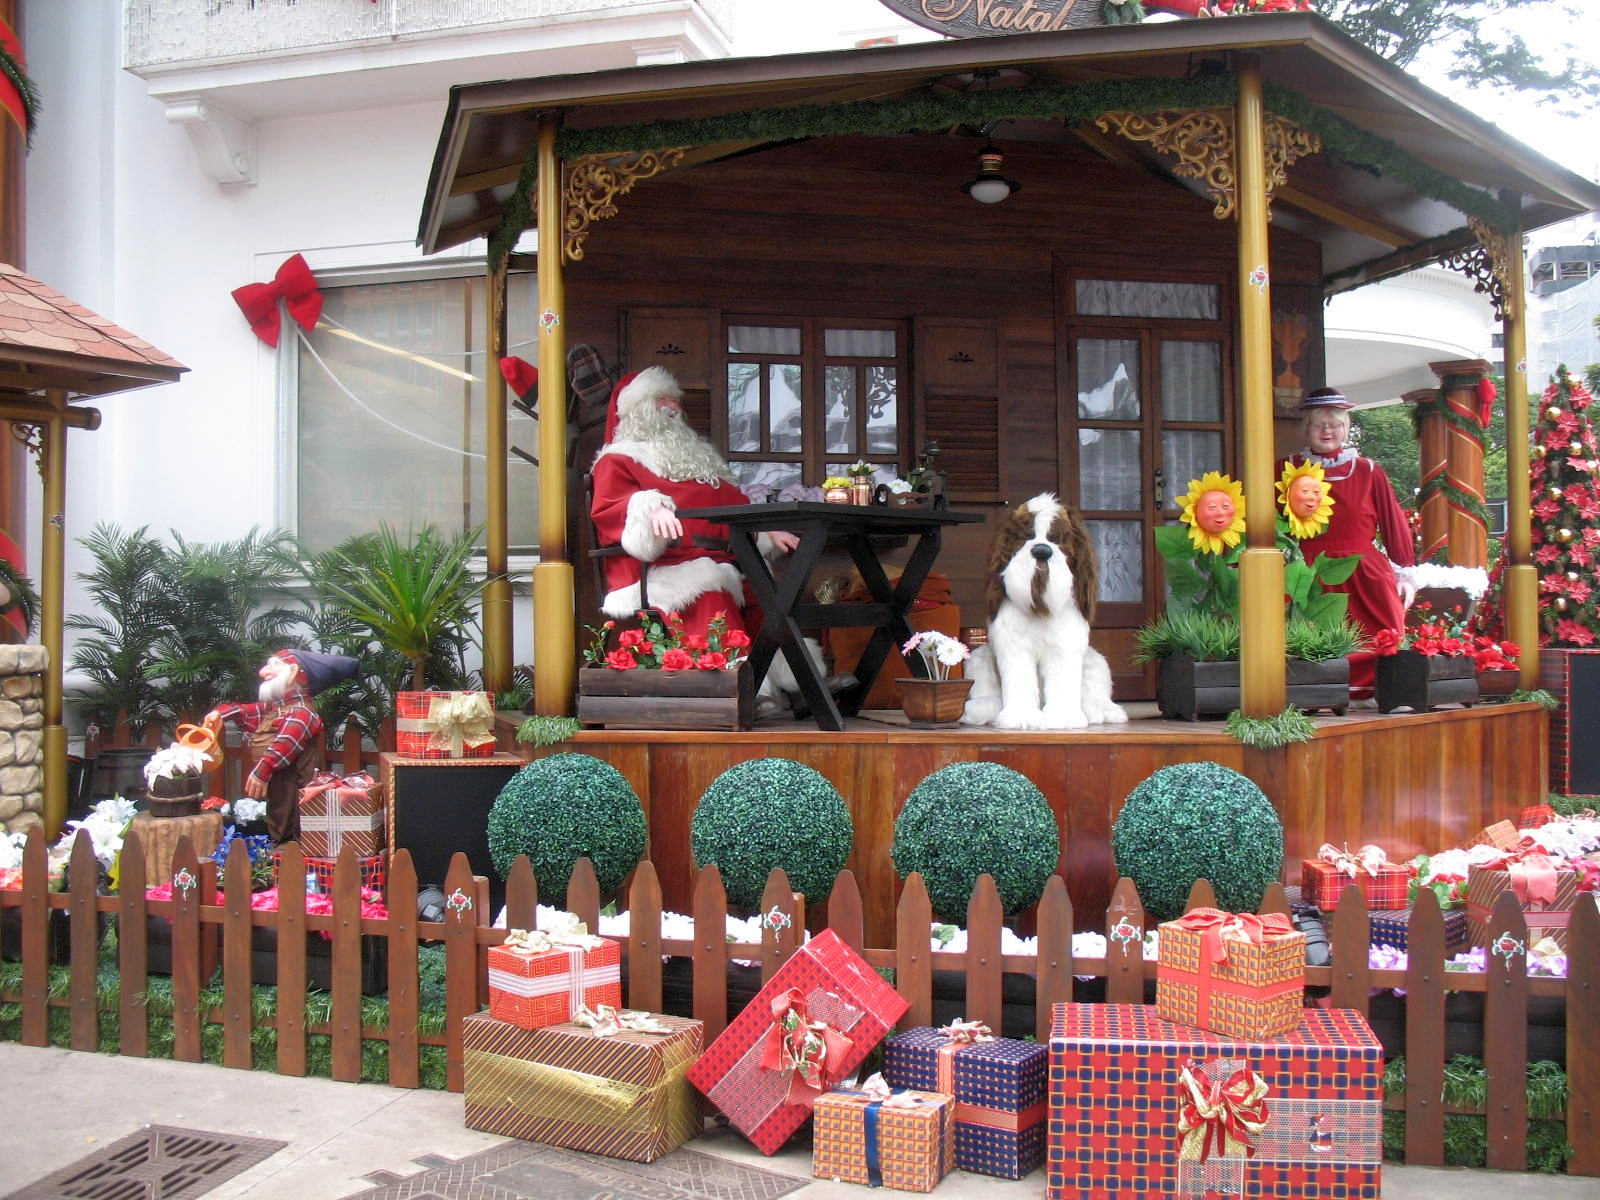 X'mas Vignette with Mr. and Mrs. Claus, their Saint Bernard, and a pile of gifts.